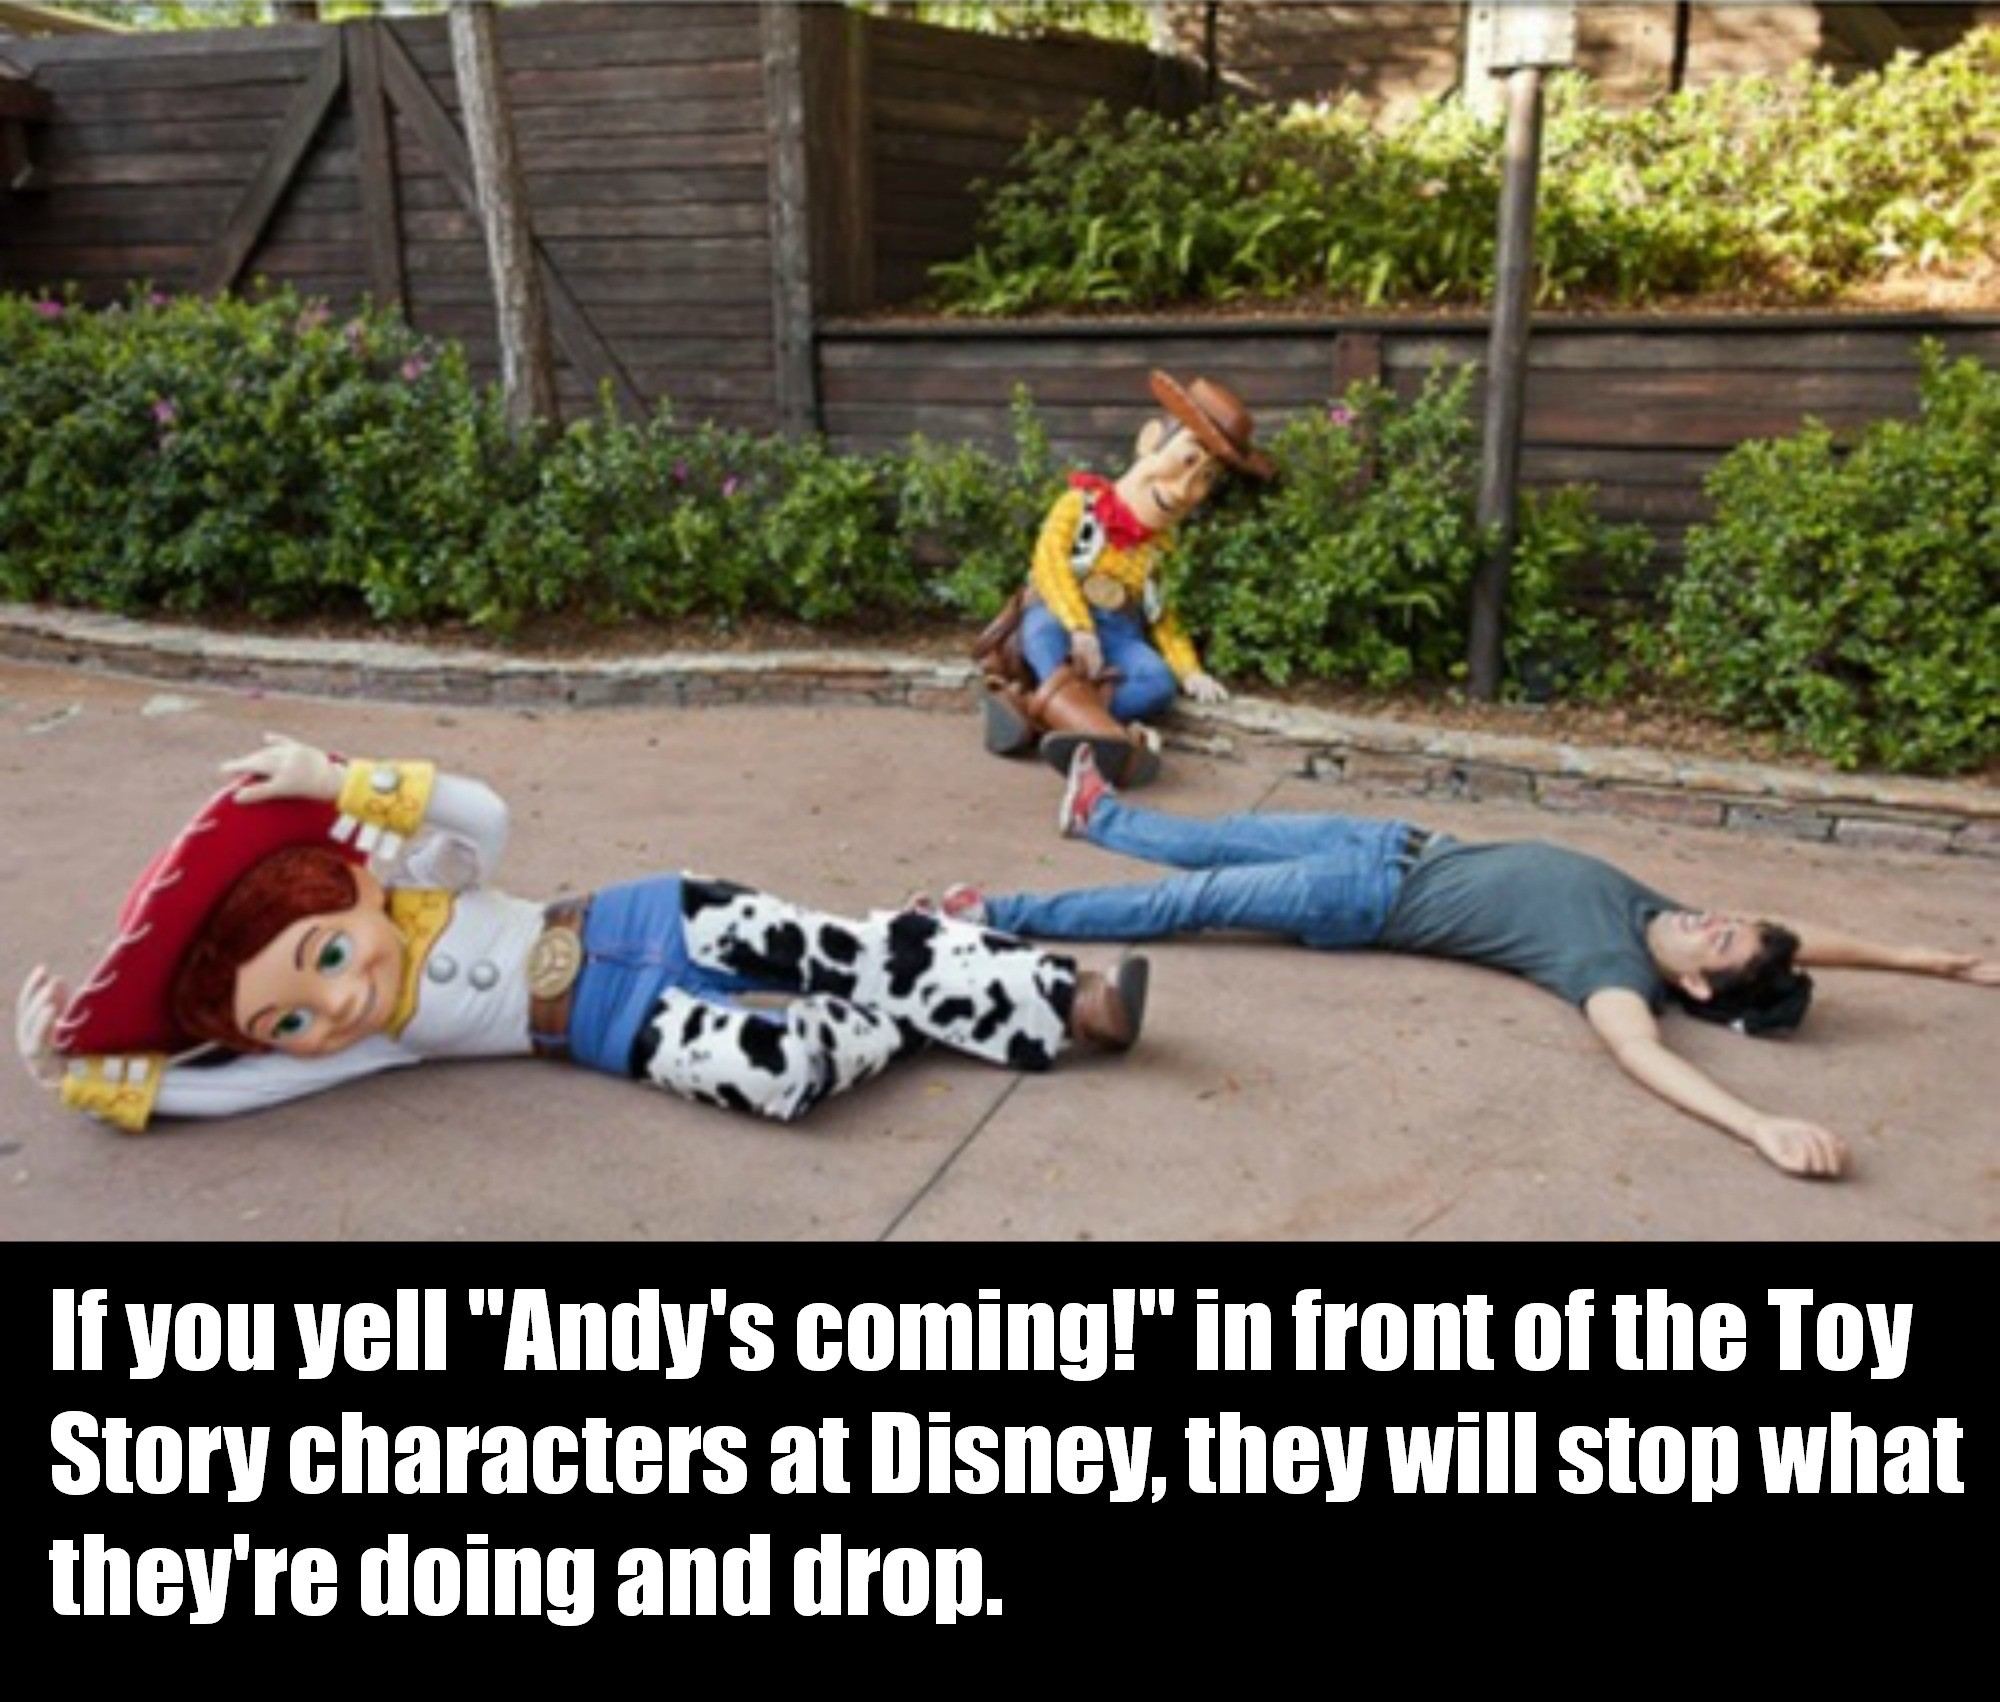 Yelling Andys Coming At Disneyland Will Make Awesome